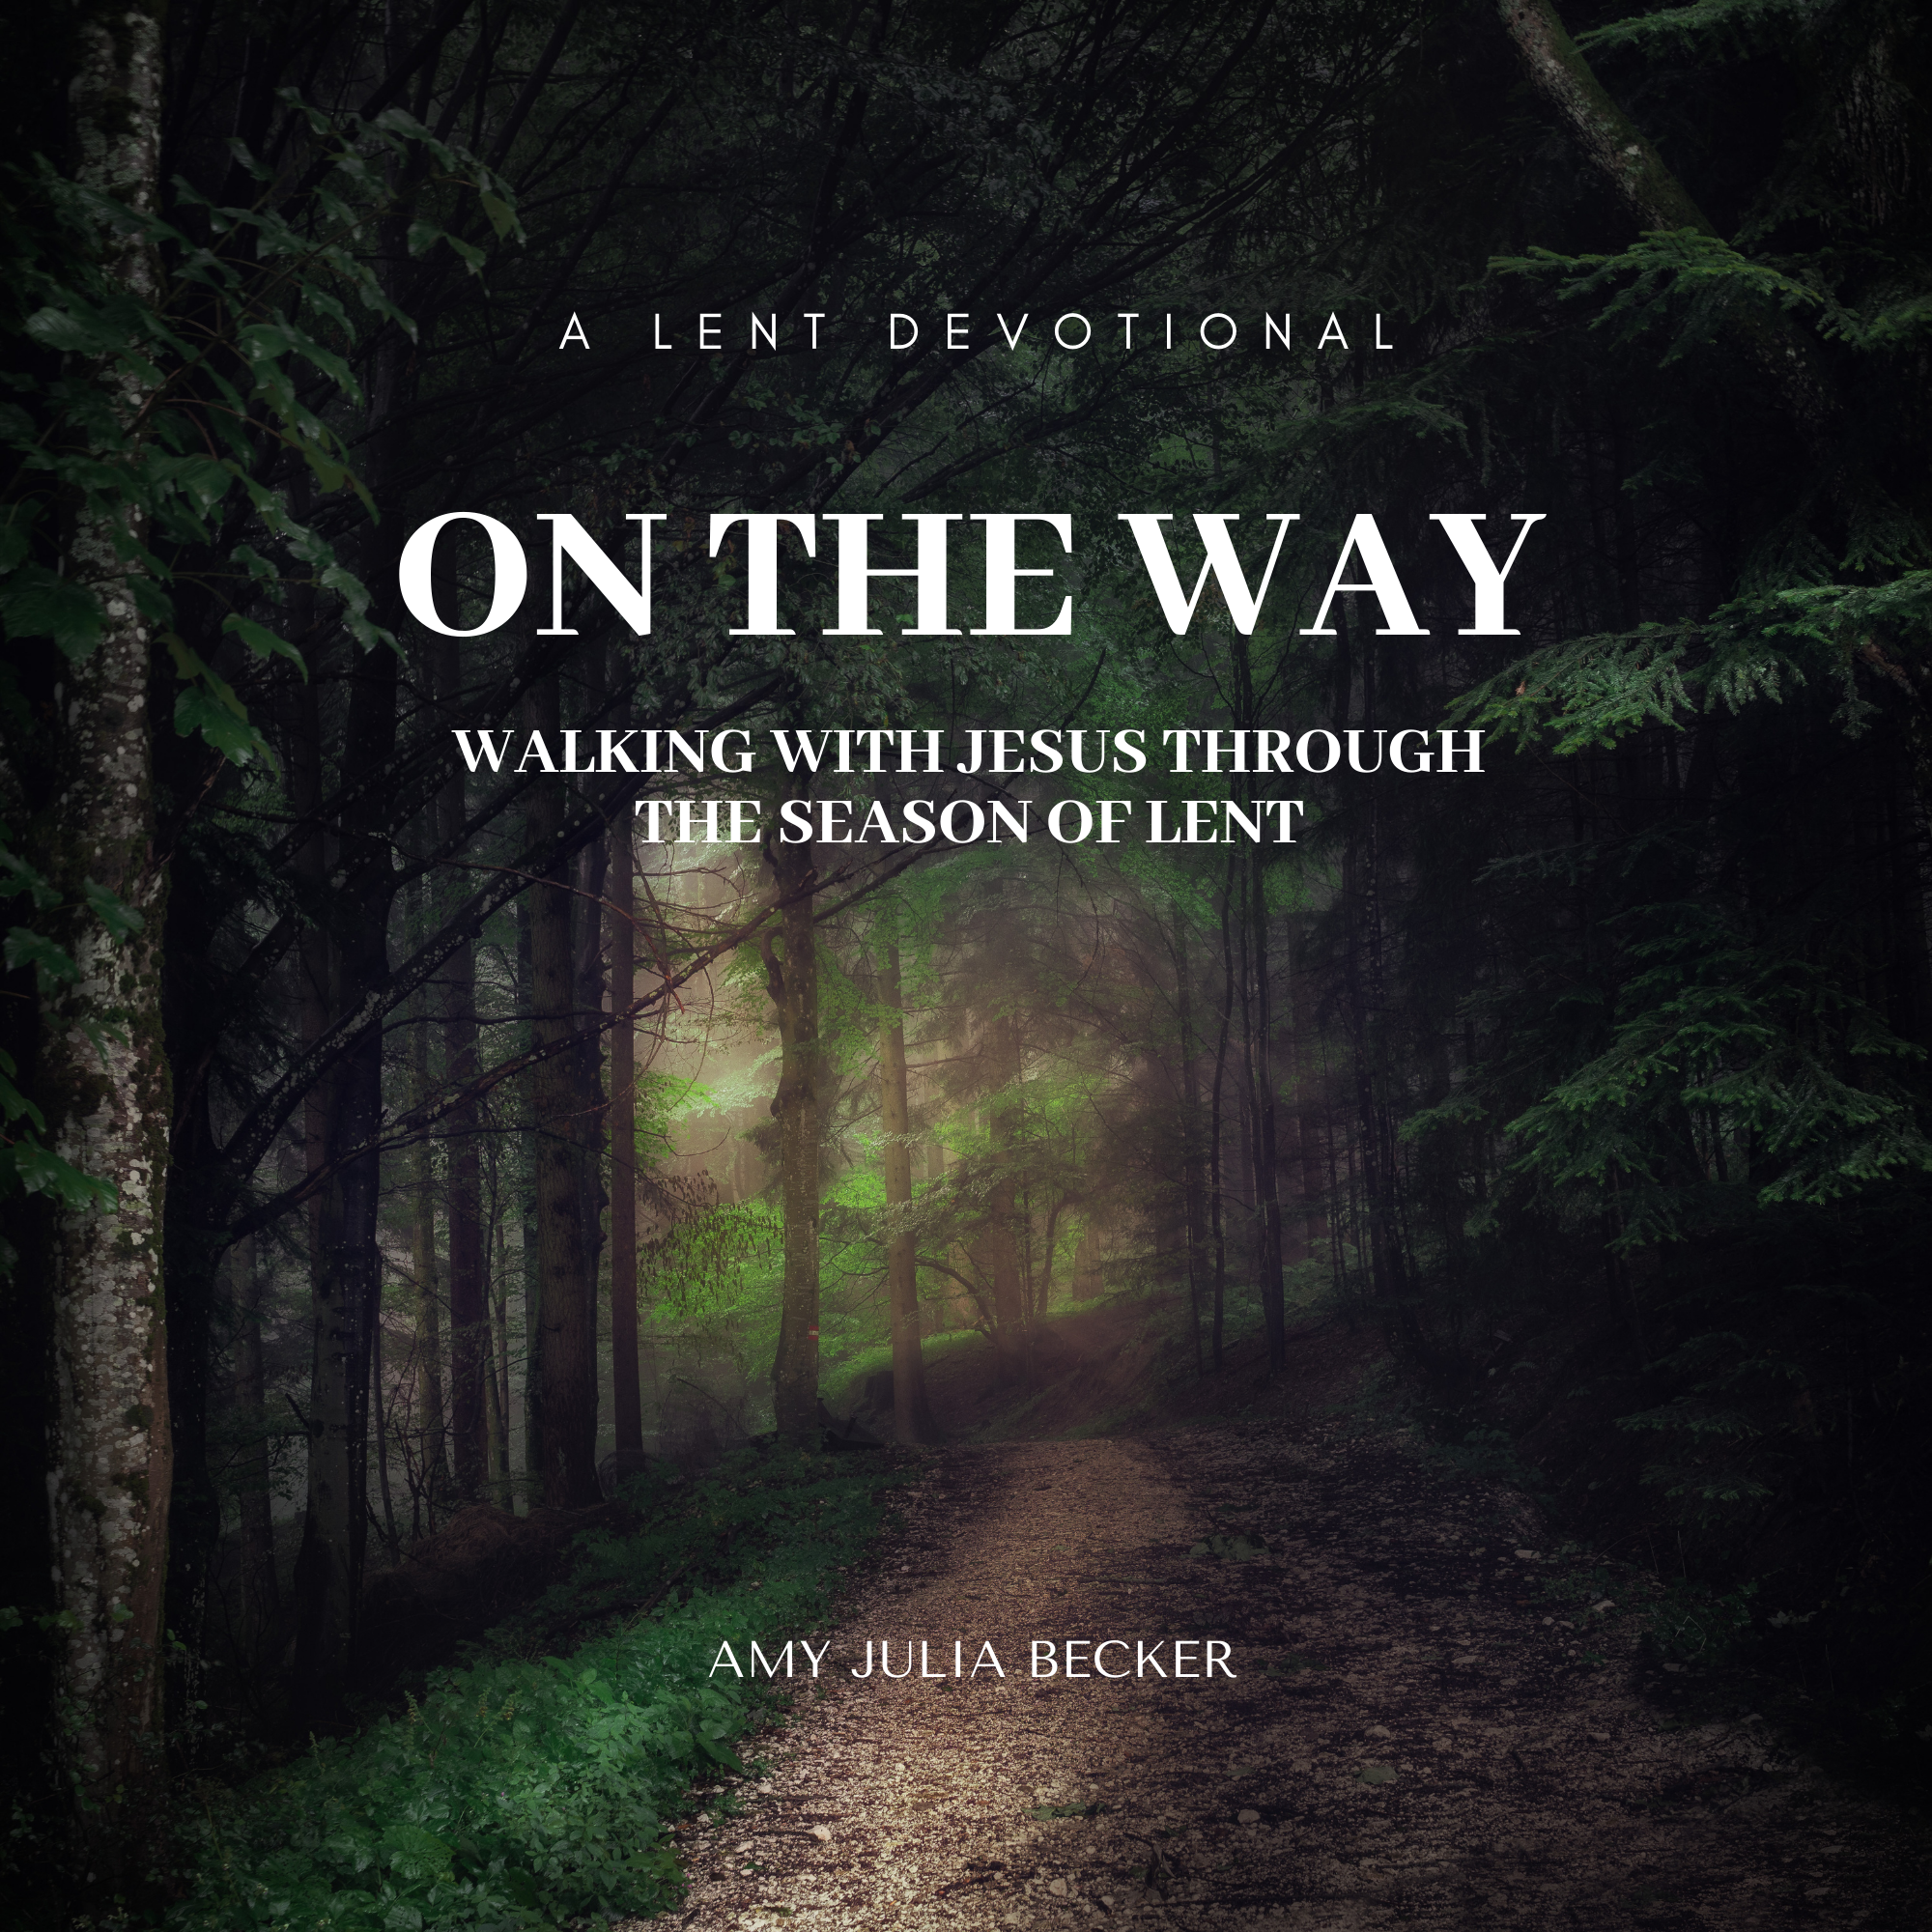 Devotional Book | On the Way: Walking With Jesus Through the Season of Lent